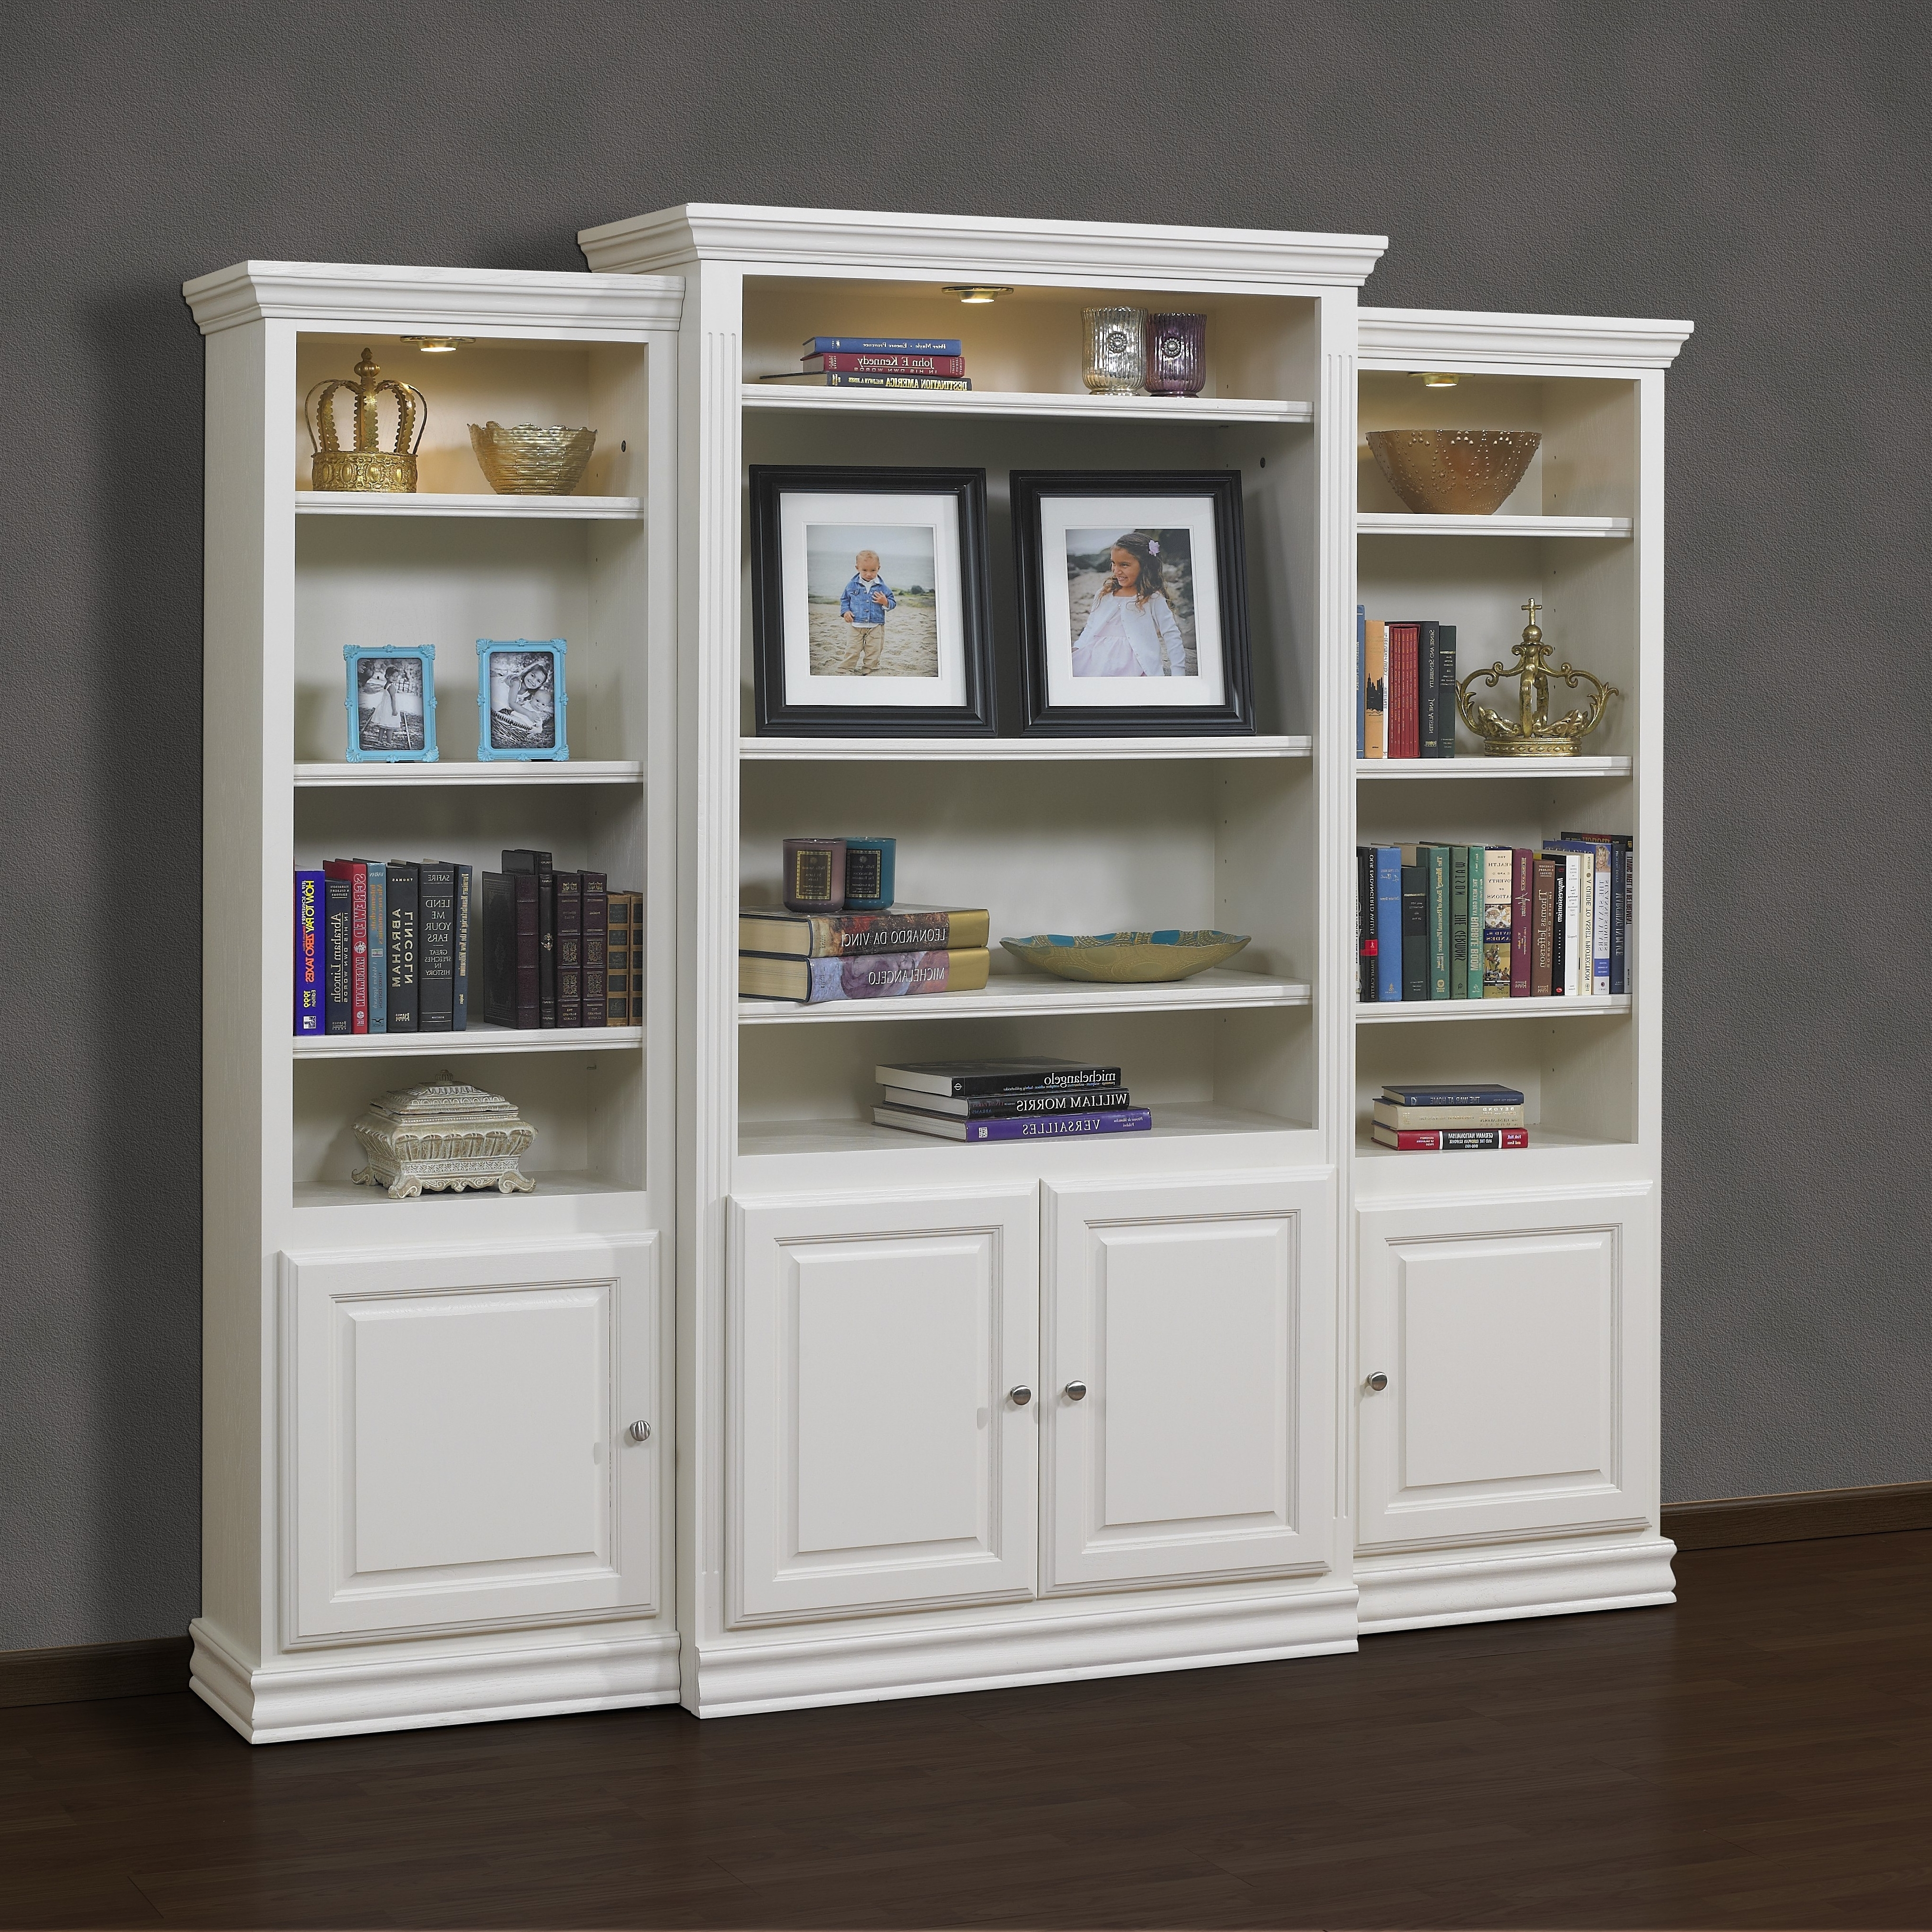 Well Known Whitekcase With Cabinet Bdc5F2B43Ec5 1000 Doors Base Doorswhite 54 Within Bookcases With Cabinet Base (View 13 of 15)